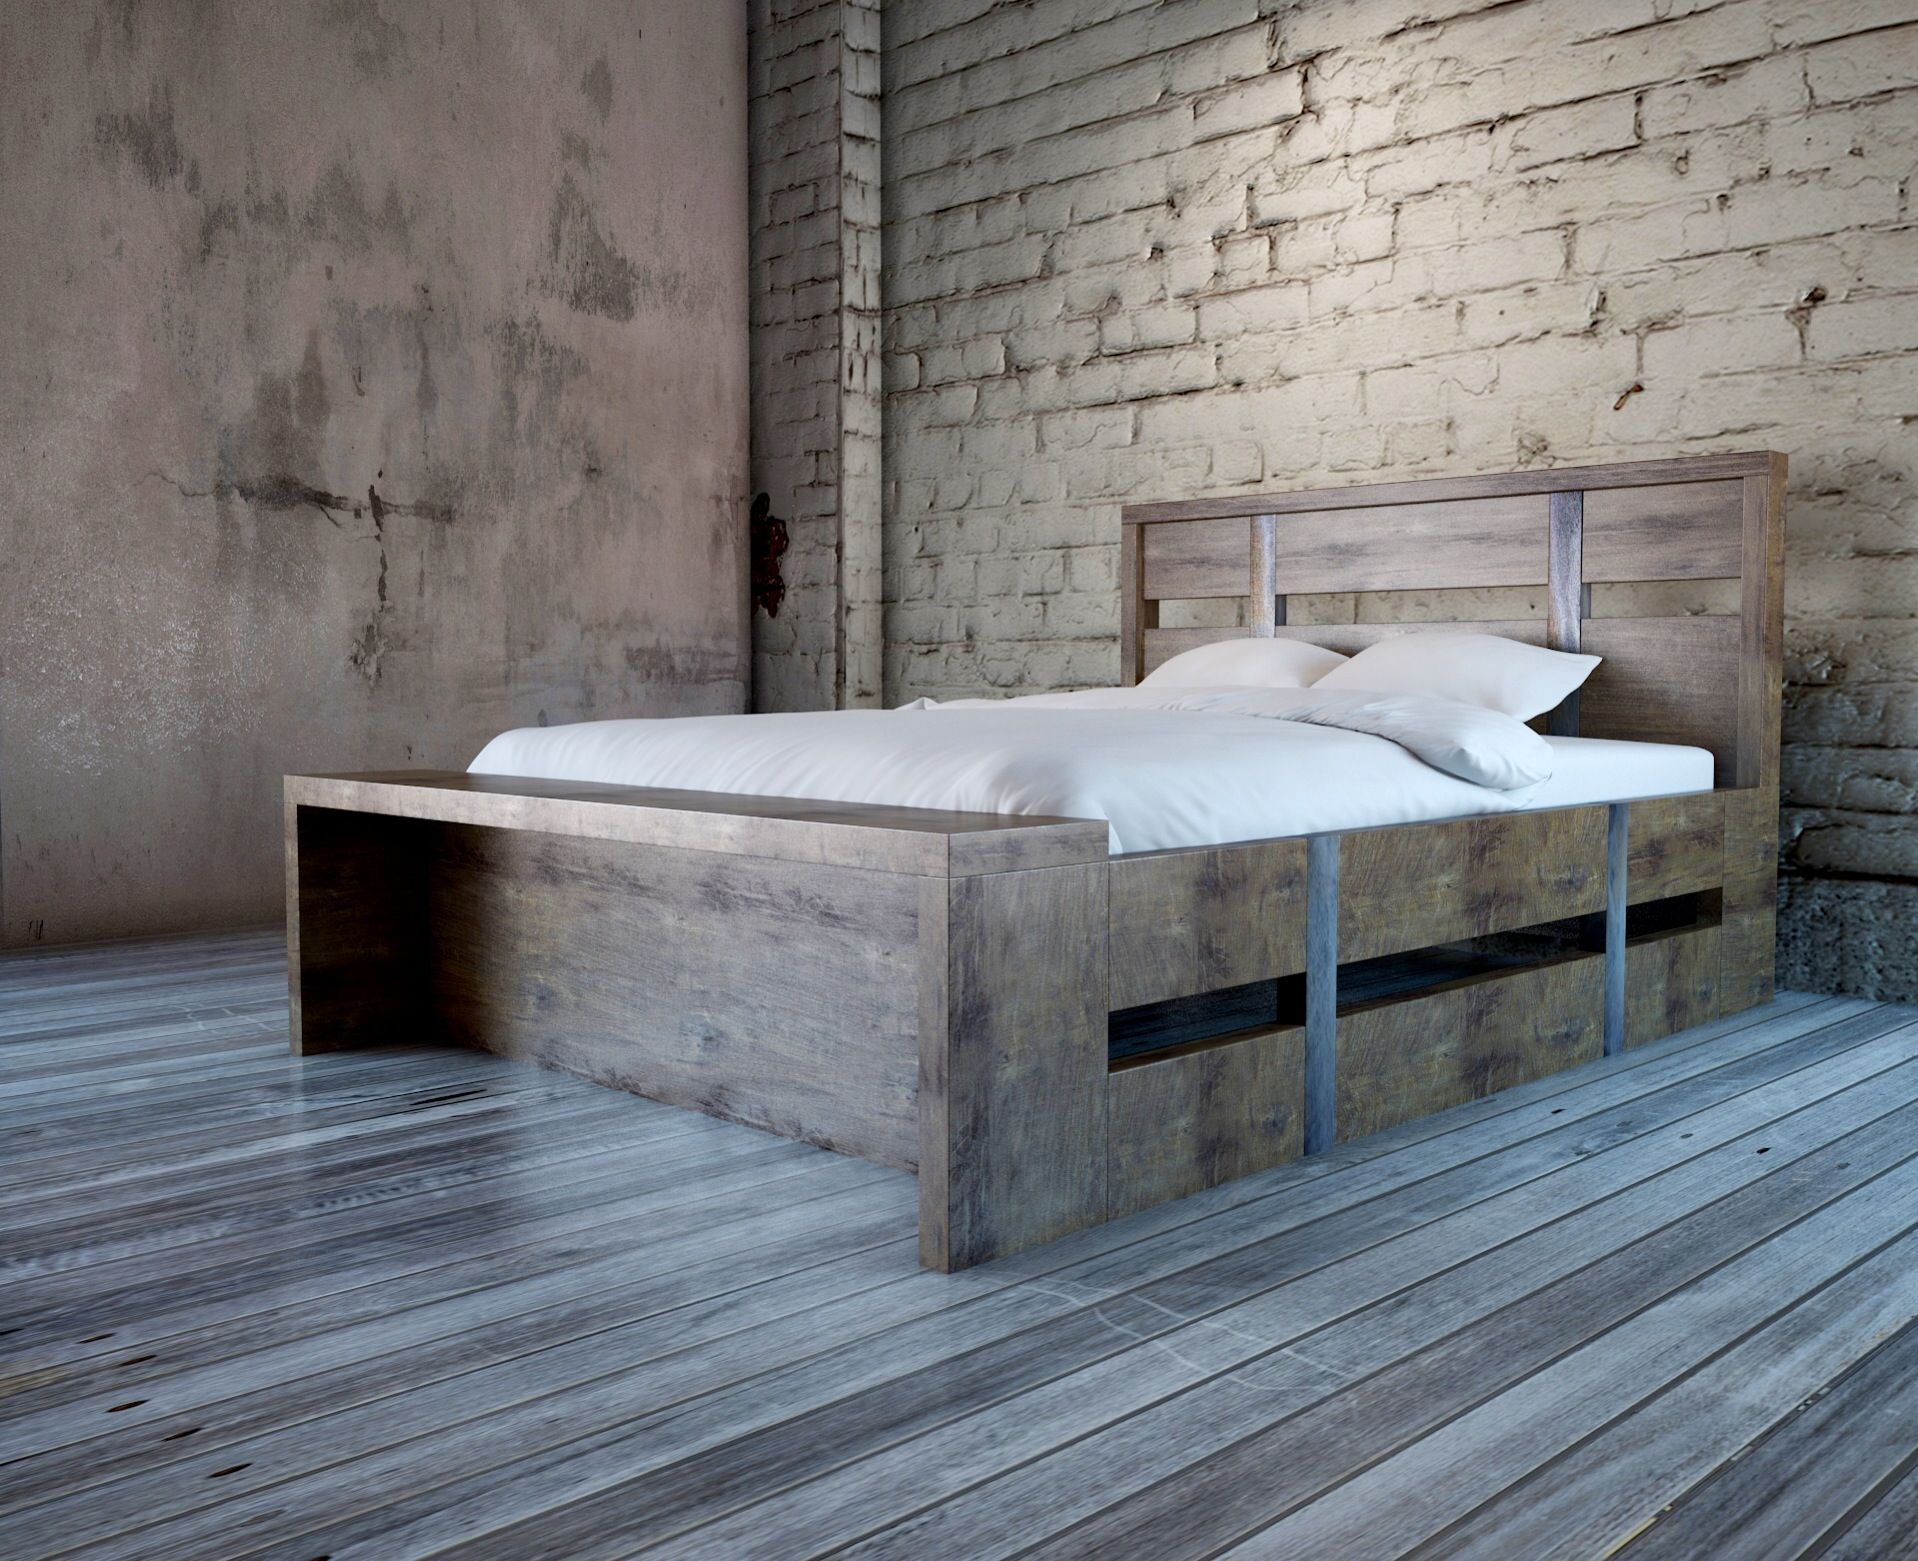 Surprising Handmade Steel Belt Bed With Build In Bench By Indistressed Short Links Chair Design For Home Short Linksinfo